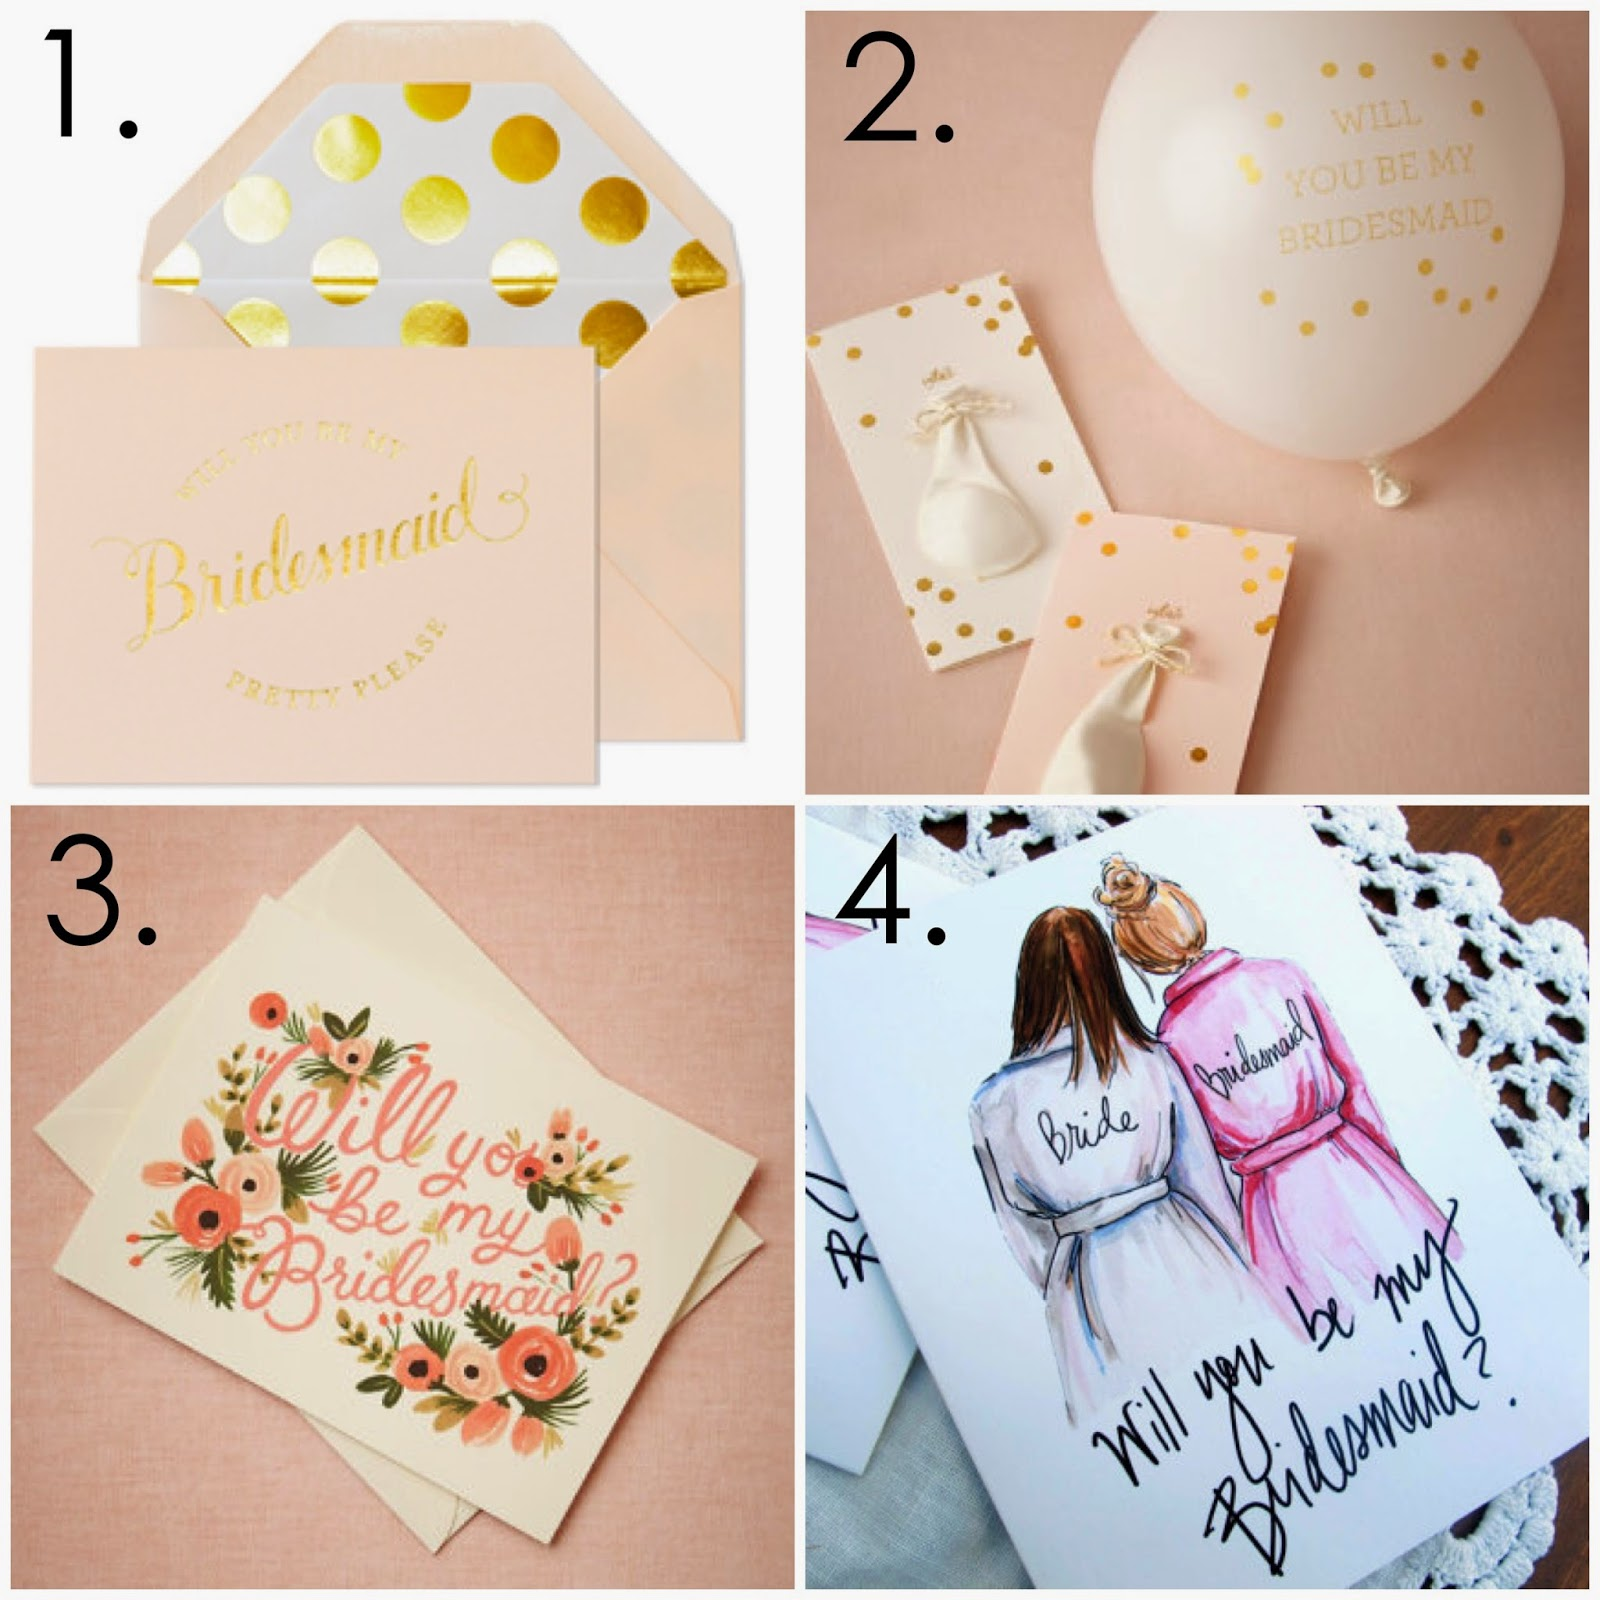 Cute Cards to ask your bridesmaids, Cute Cards to ask your bridesmaids ideas, ideas on how to ask your bridesmaids, ideas on how to ask your maid of honor, adorable cards, gold foiled bridesmaid cards